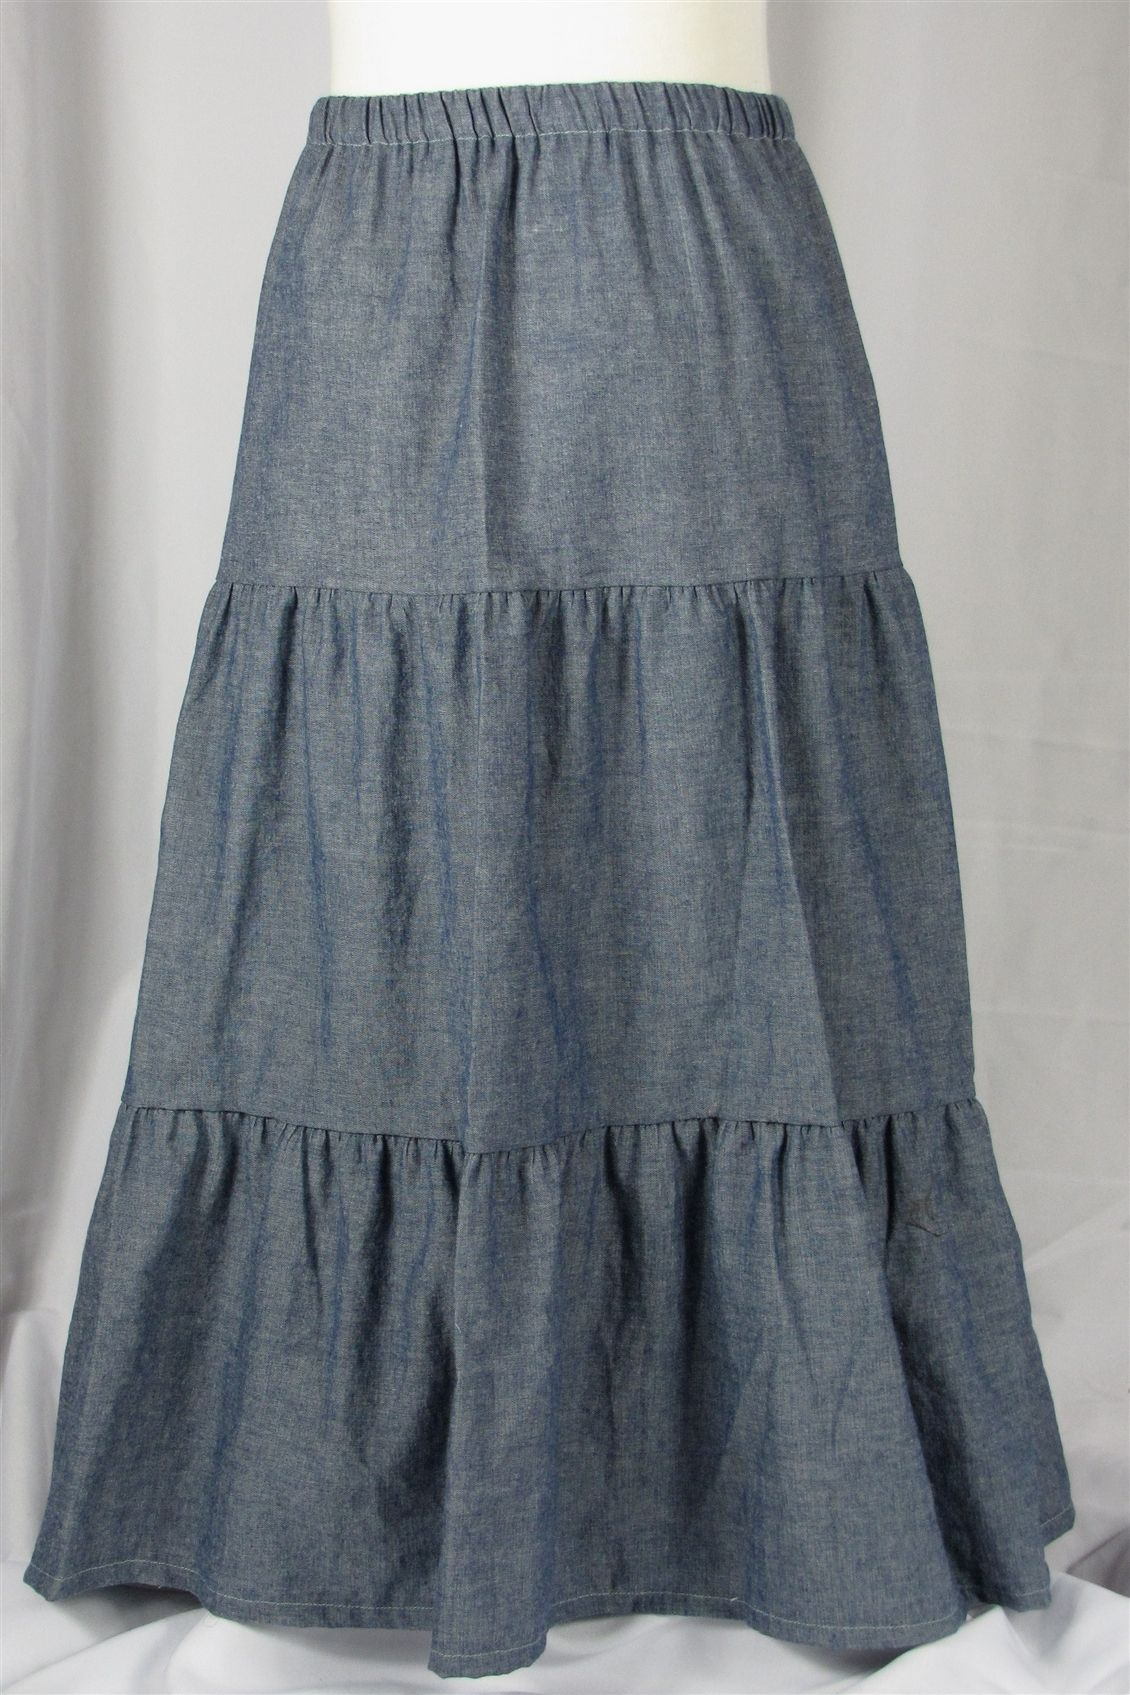 Girls Tiered Long Denim Skirt, Sizes 2-7 | Sewing | Pinterest ...